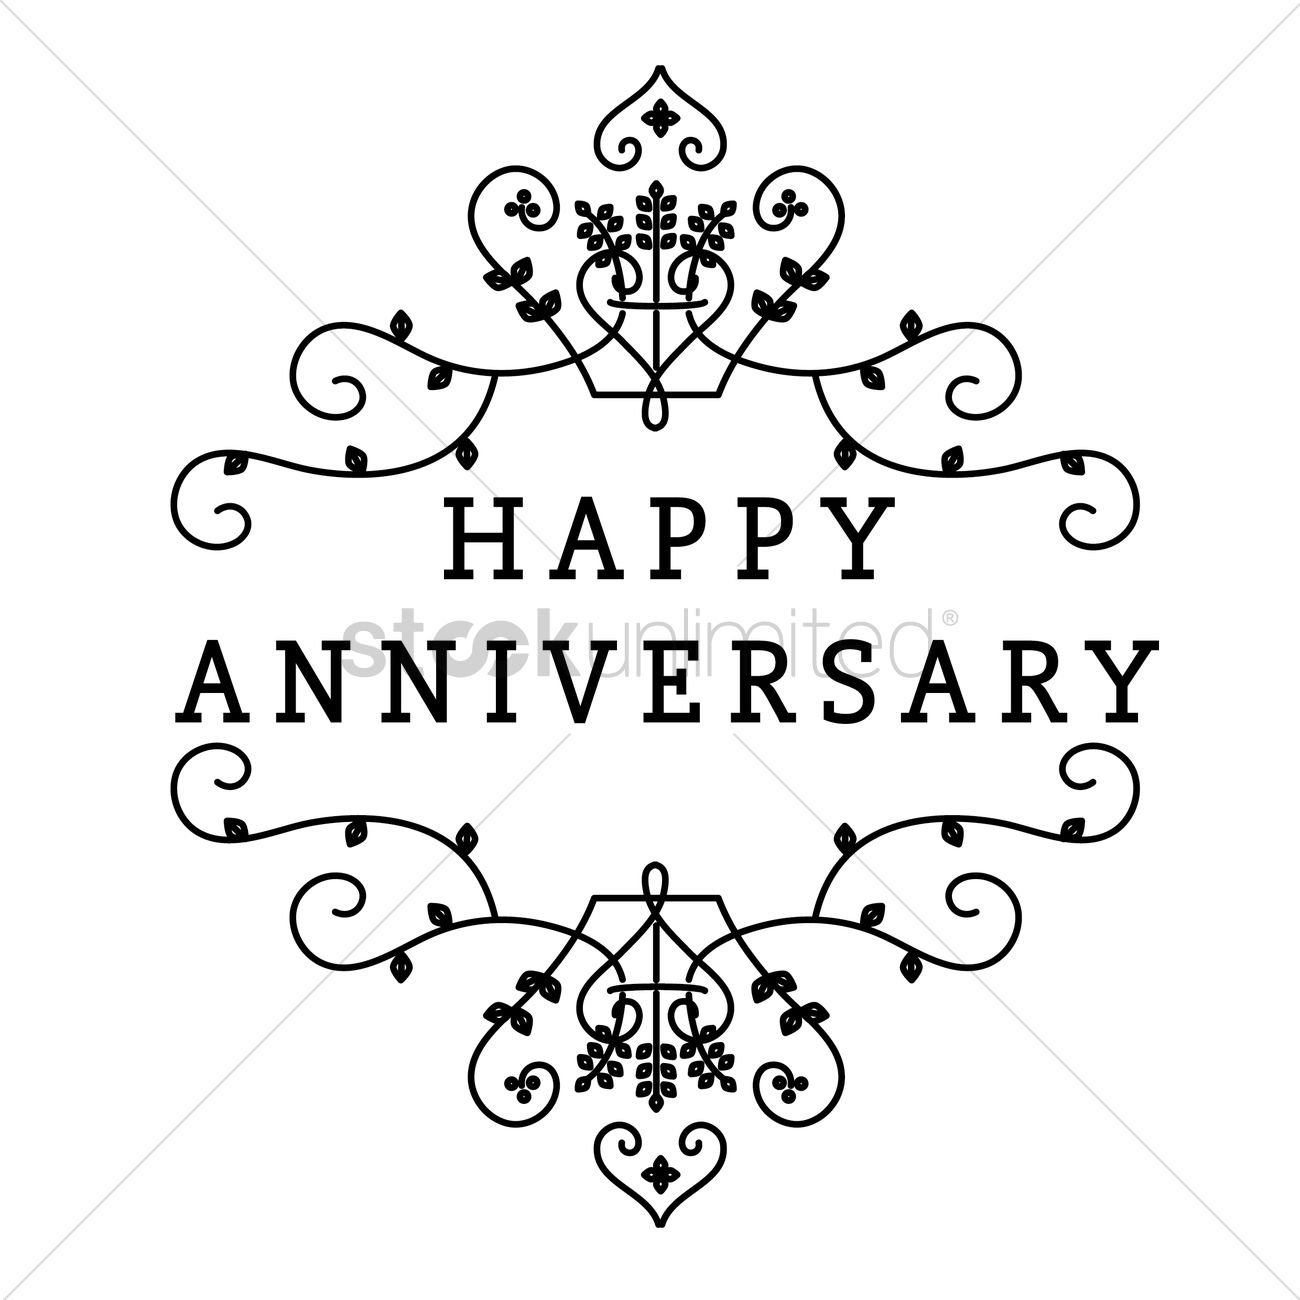 Happy Anniversary Greeting Text Vector Image